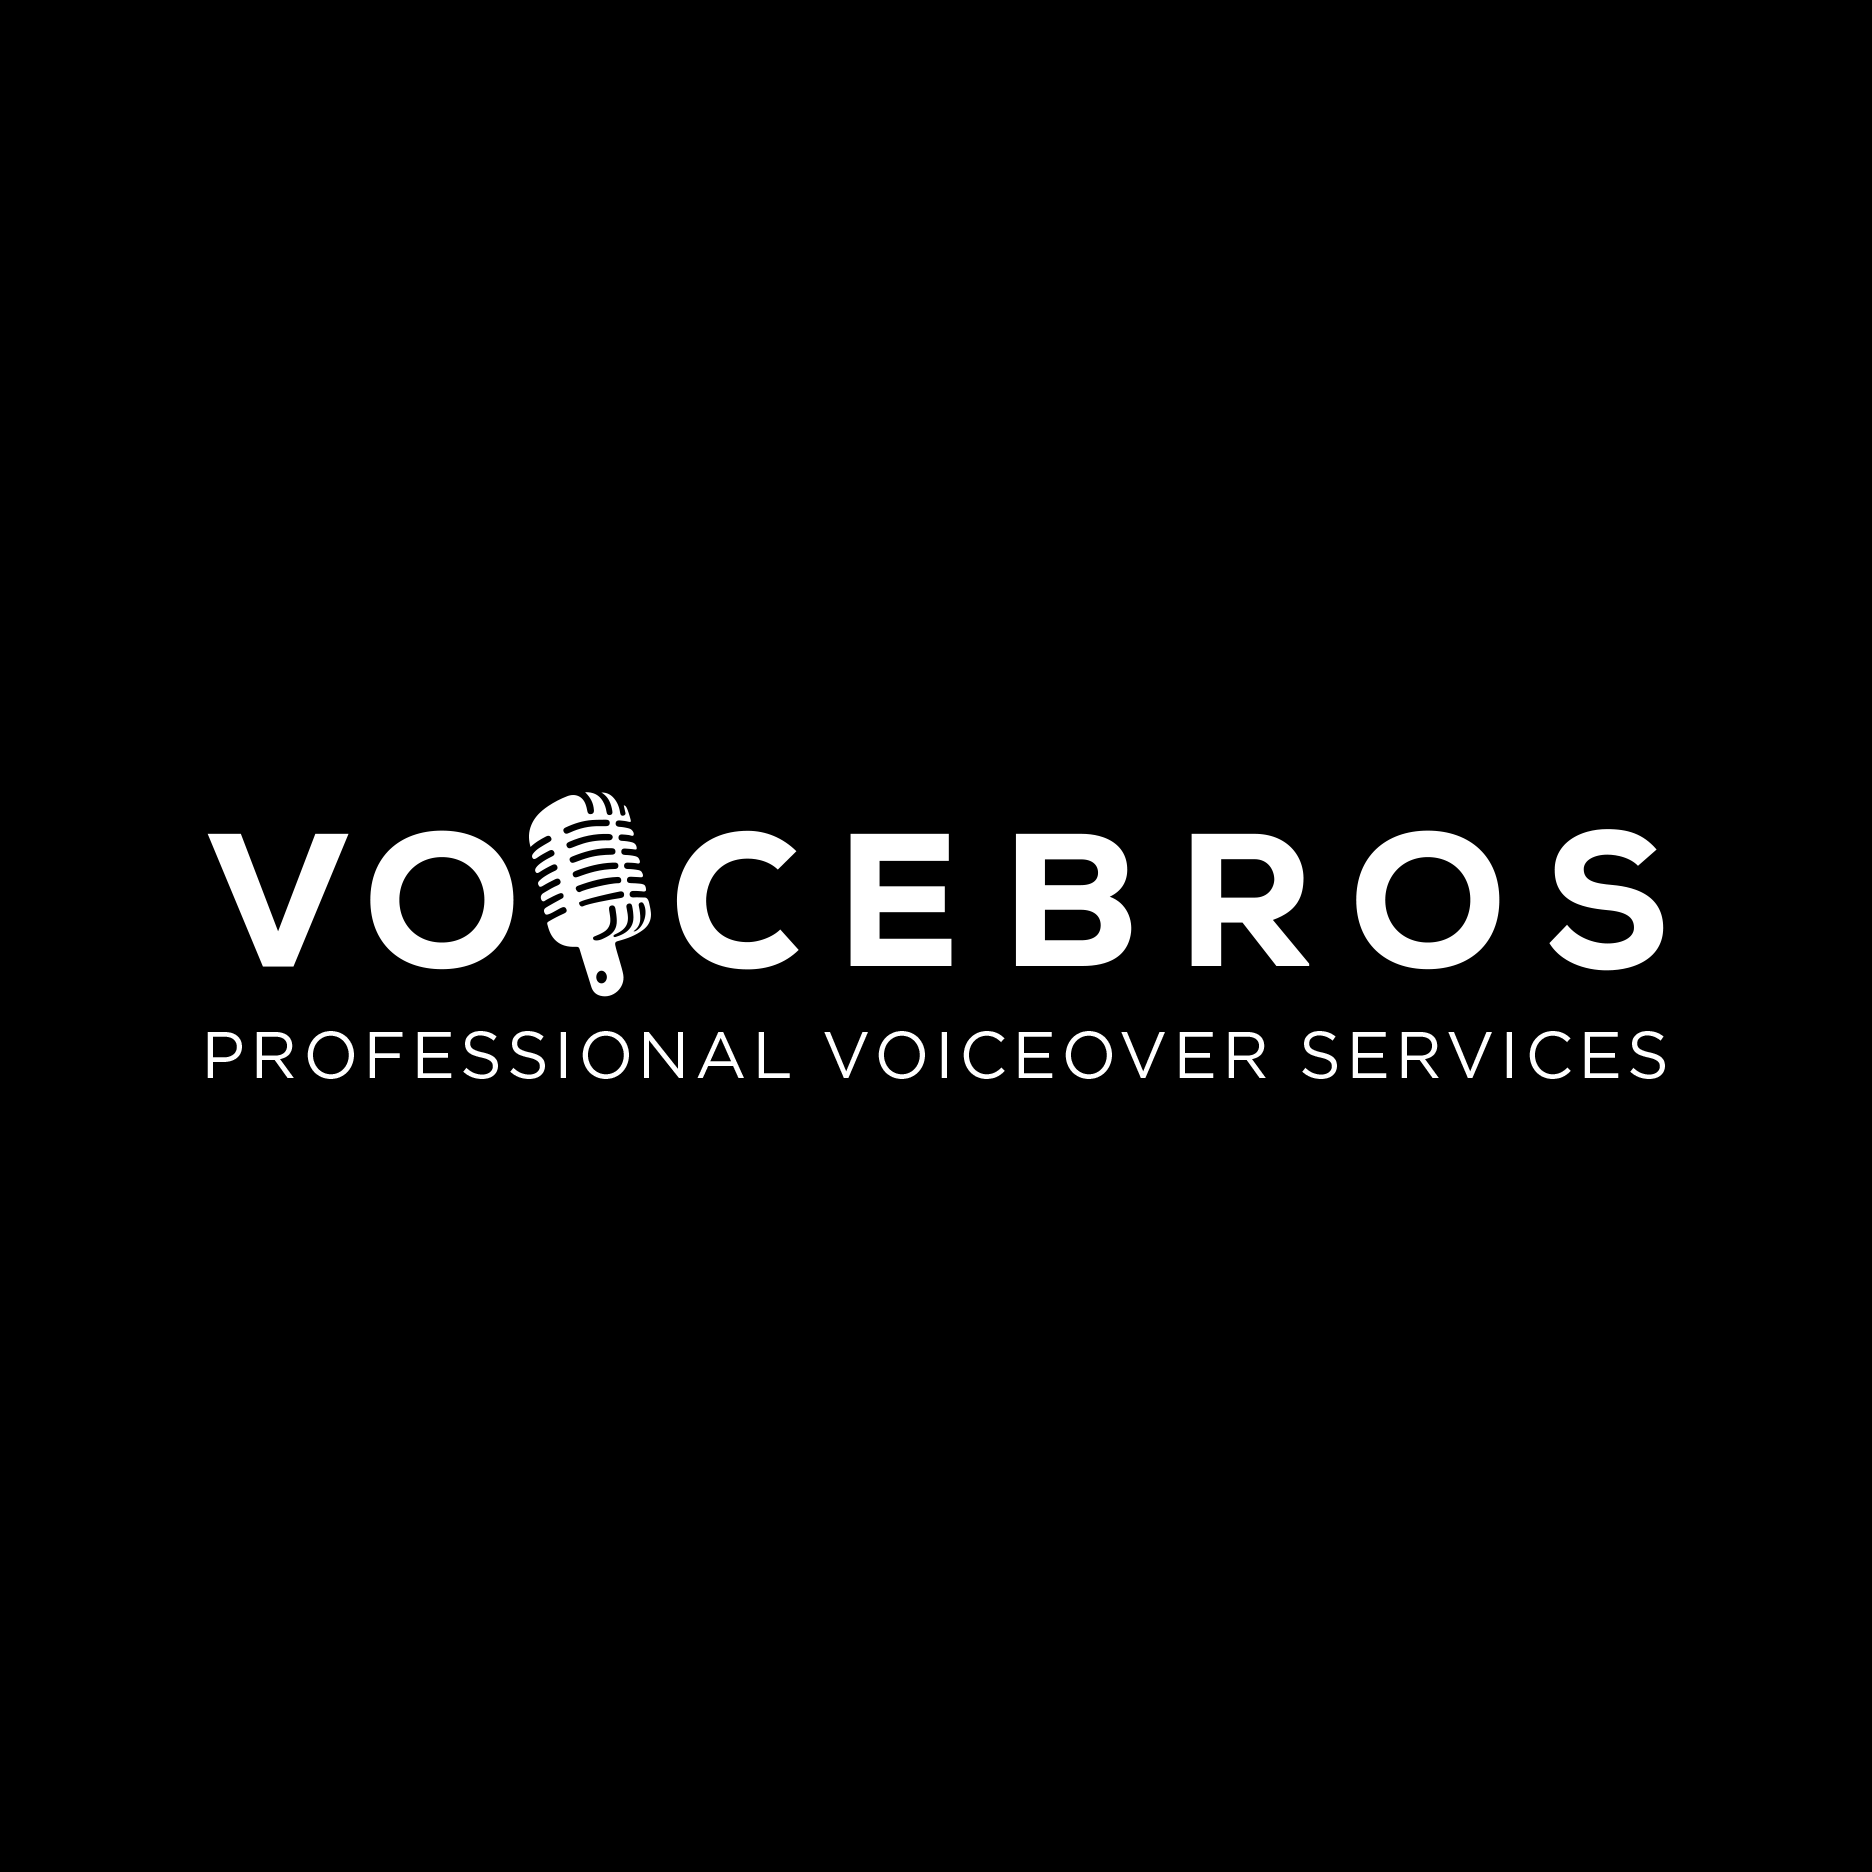 Hilary B. is a voice over actor